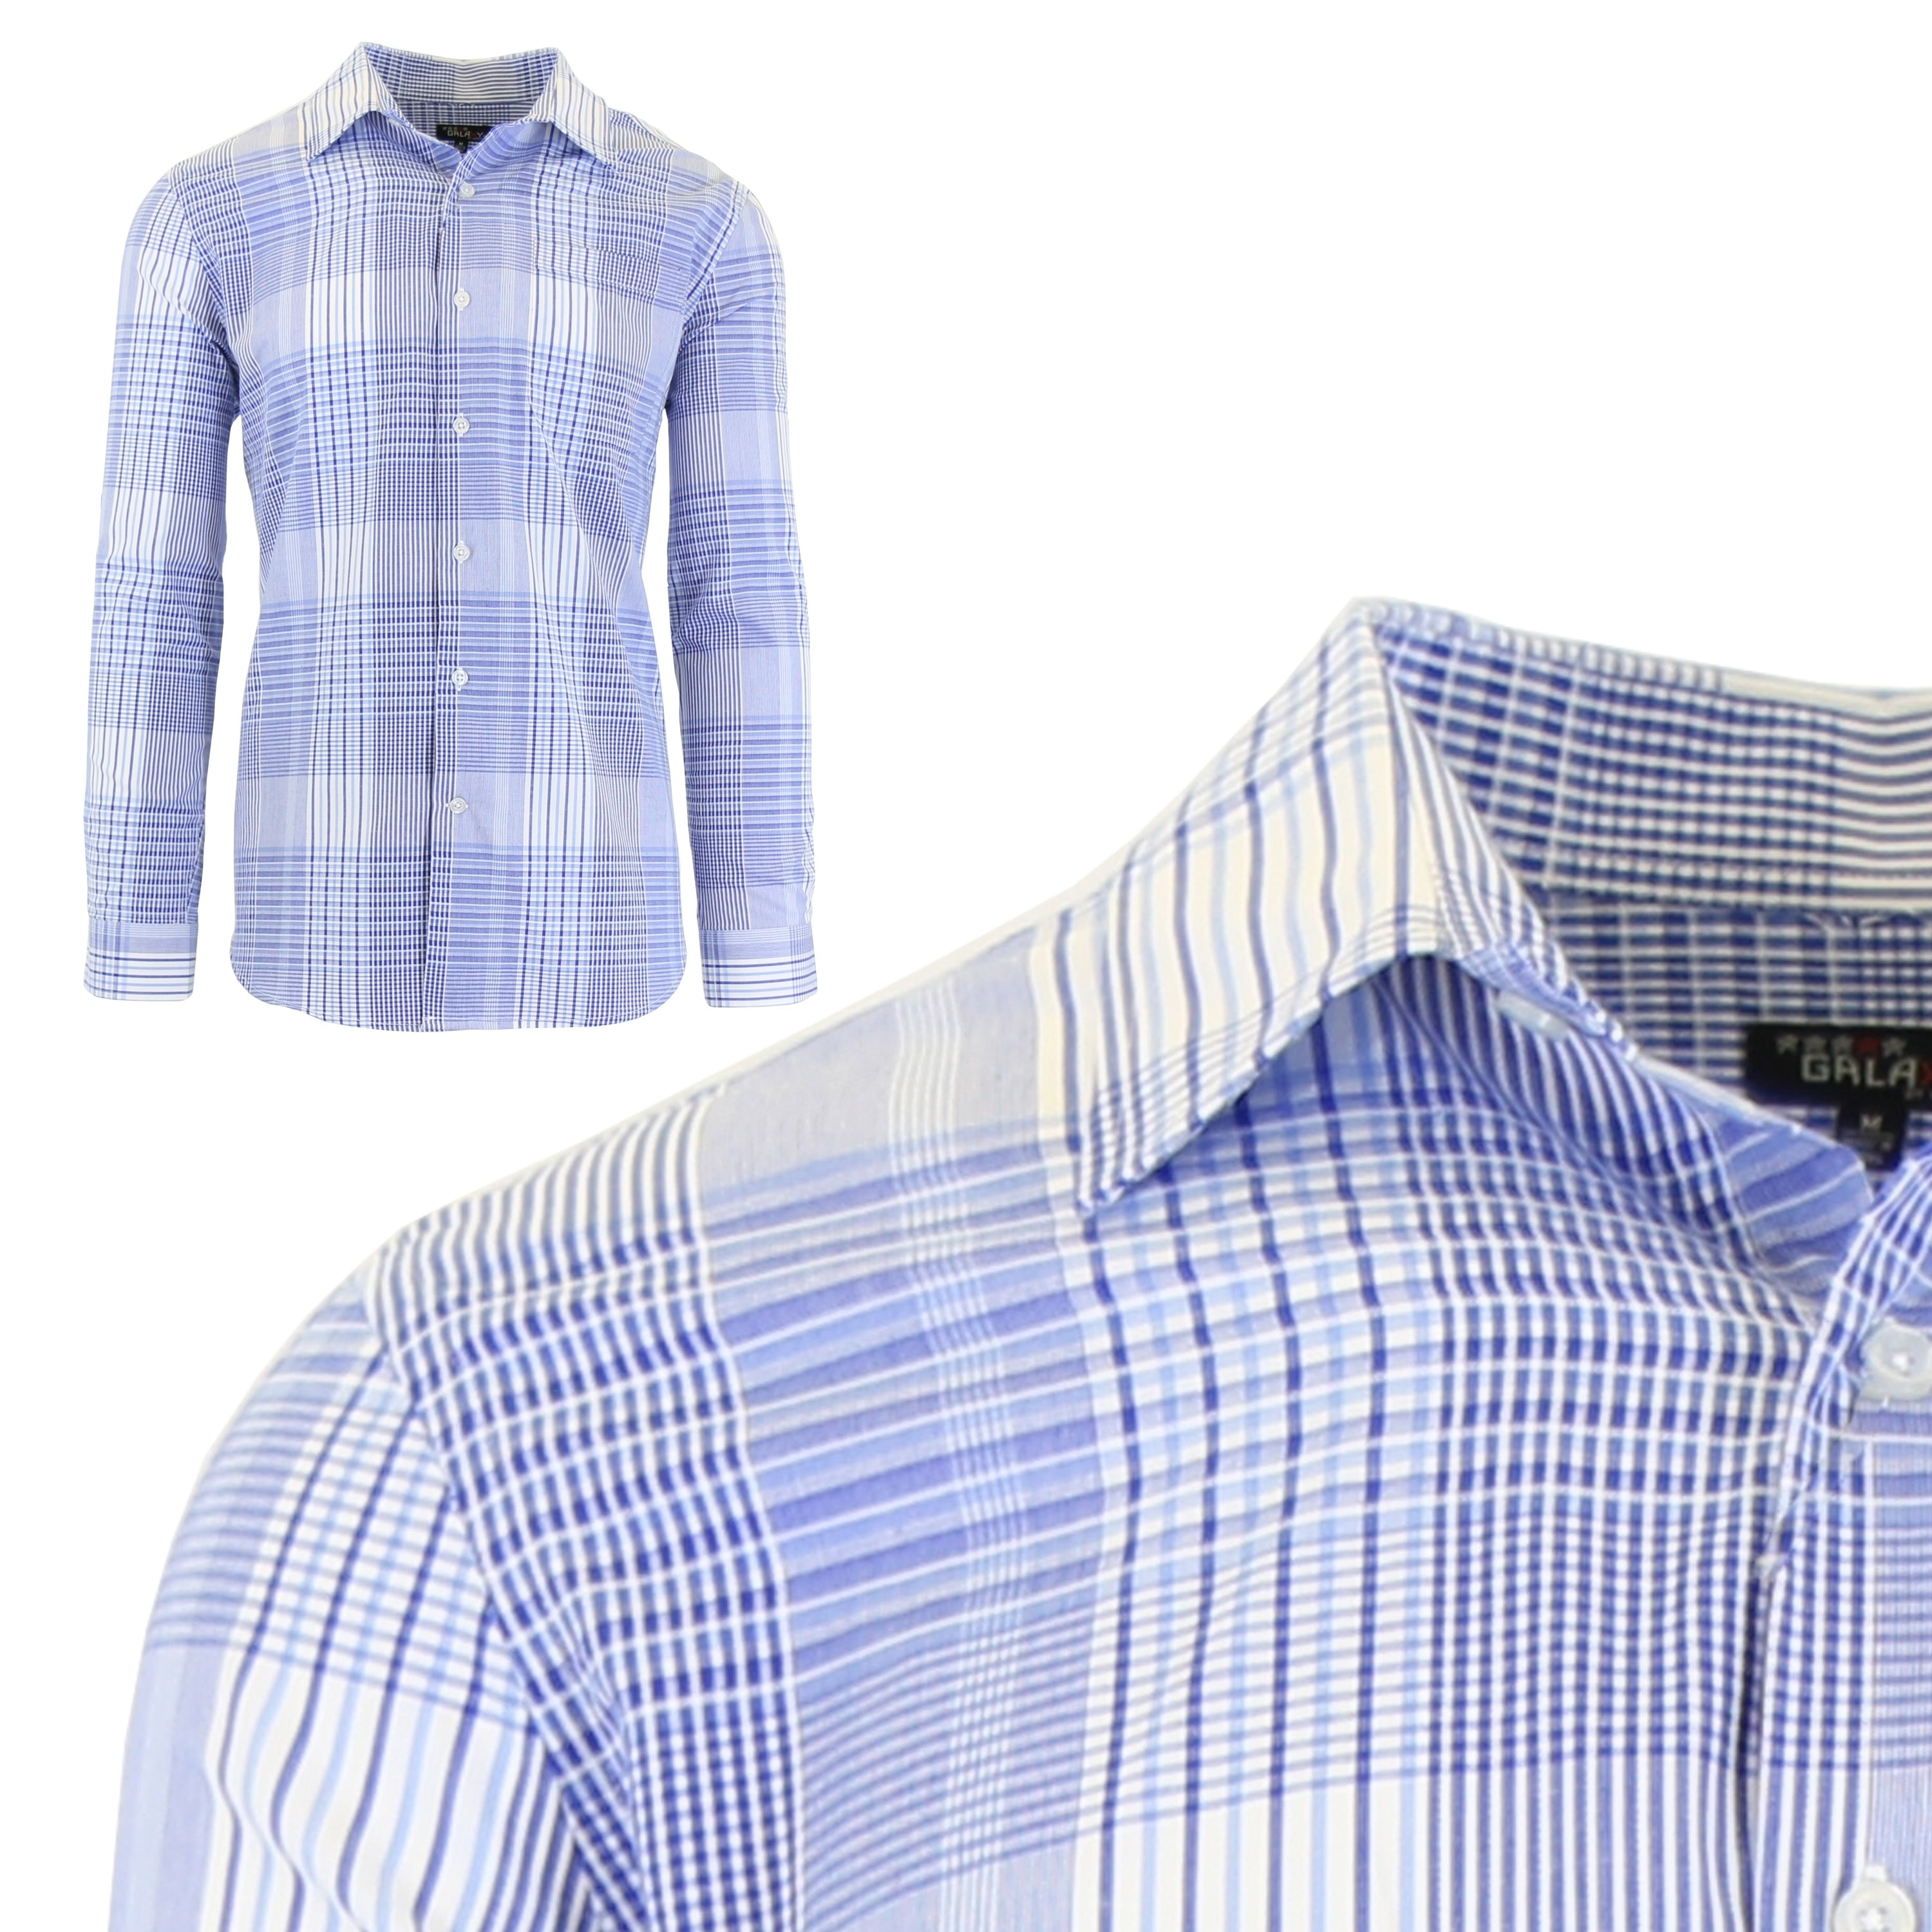 1b152c3ef5 Shop Galaxy By Harvic Men's Long Sleeve Checkered Button Down Dress Shirts  - On Sale - Free Shipping On Orders Over $45 - Overstock - 18917962